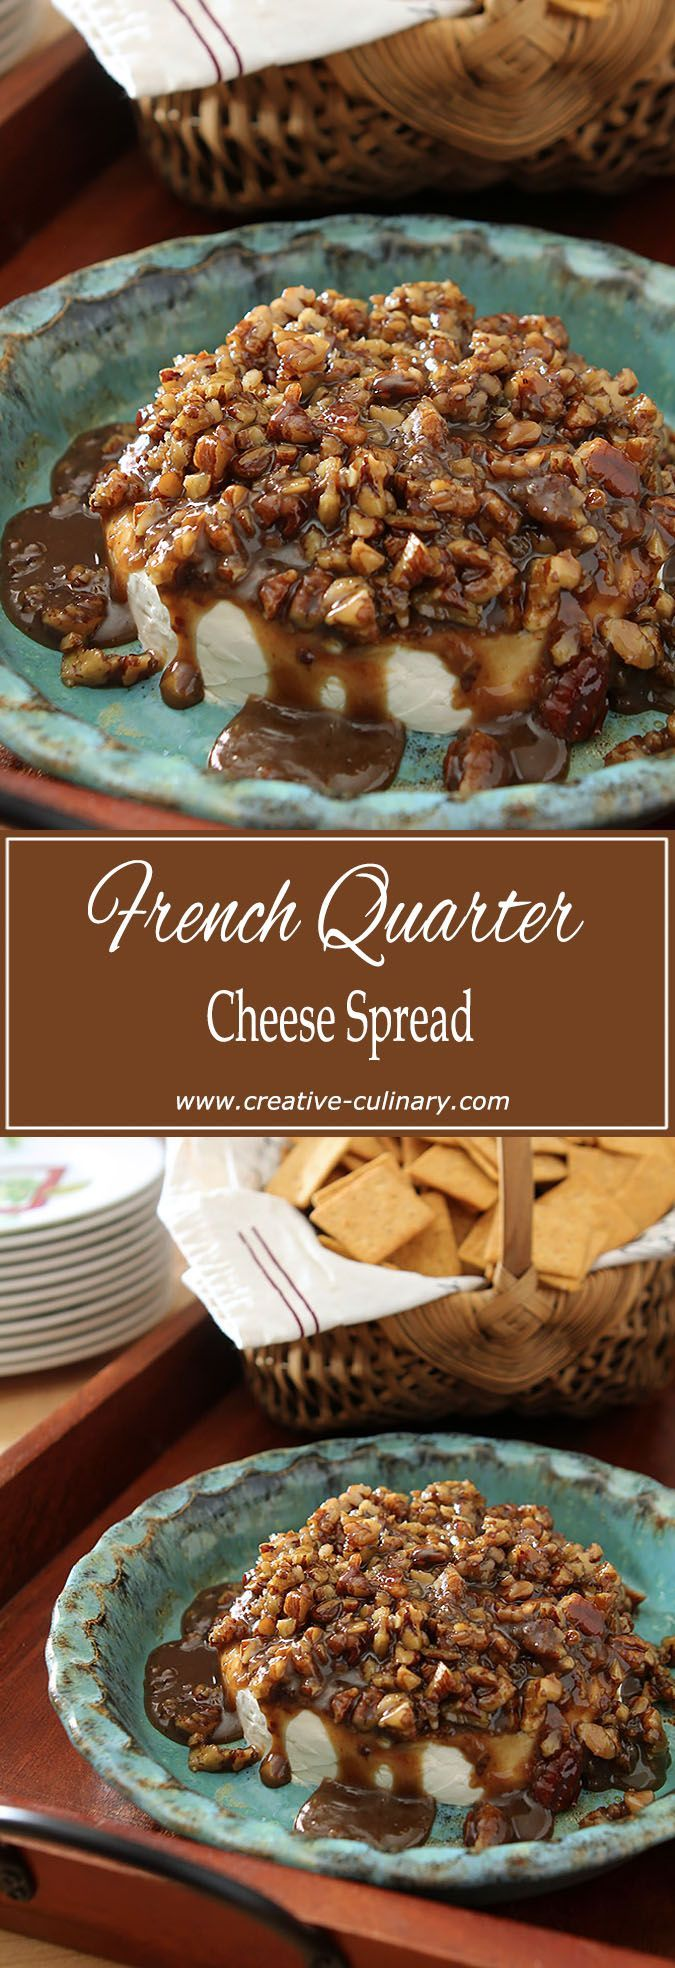 This French Quarter Cheese Spread is so delicious I sometimes wish company would cancel and it could be all mine. via @creativculinary